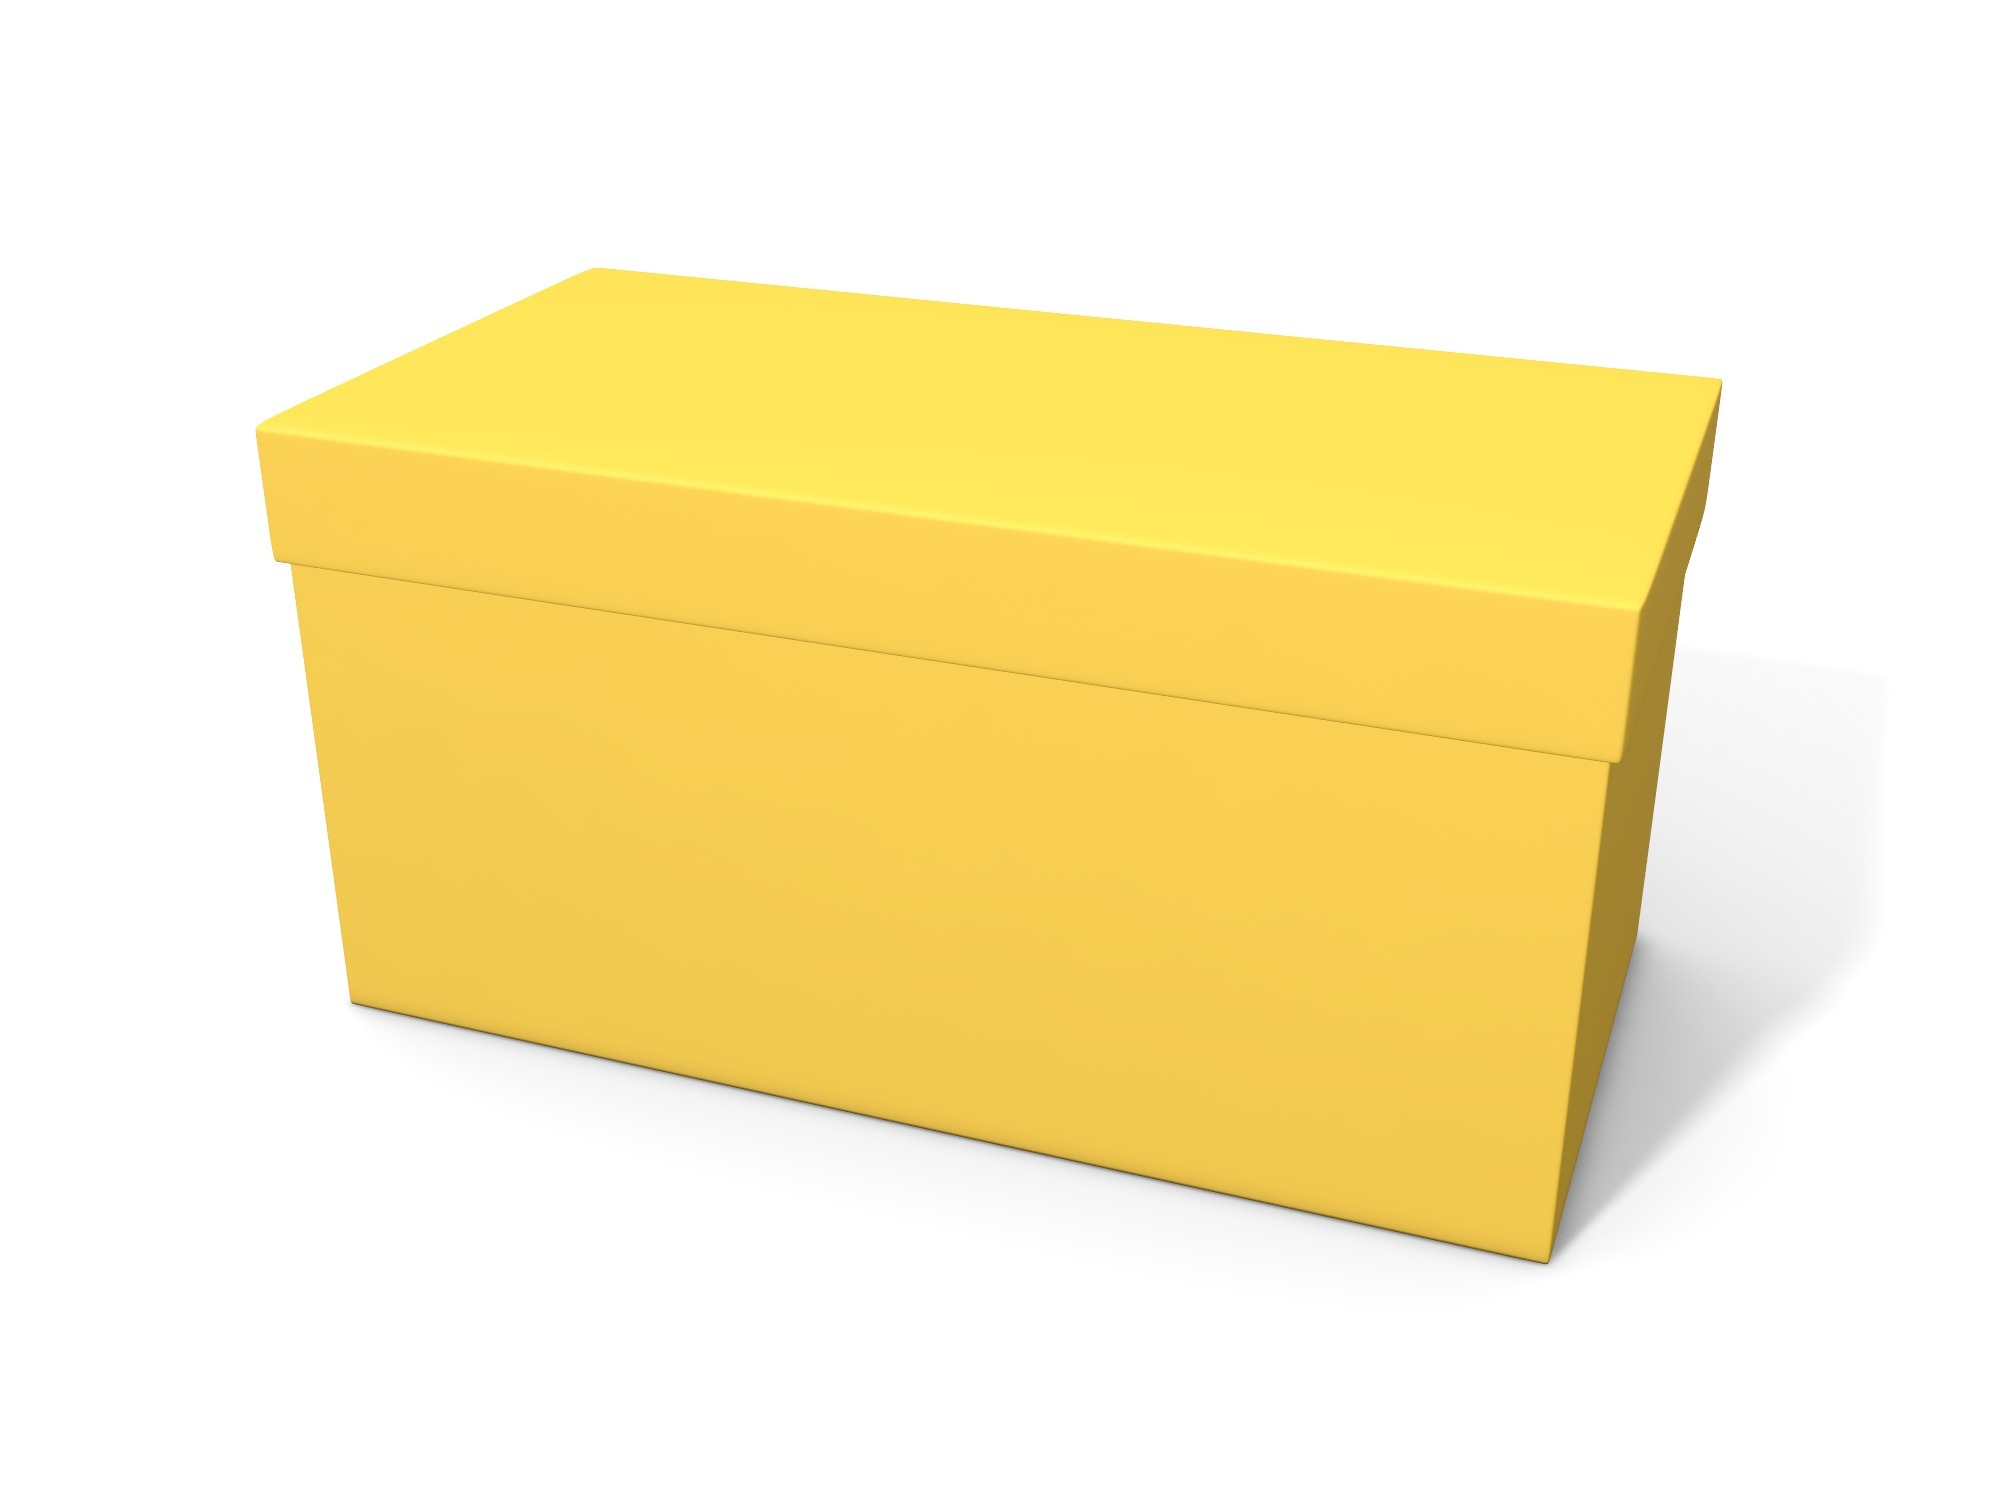 Box with lid 100 × 50 × 50 - 3D design by assets Nov 6, 2018